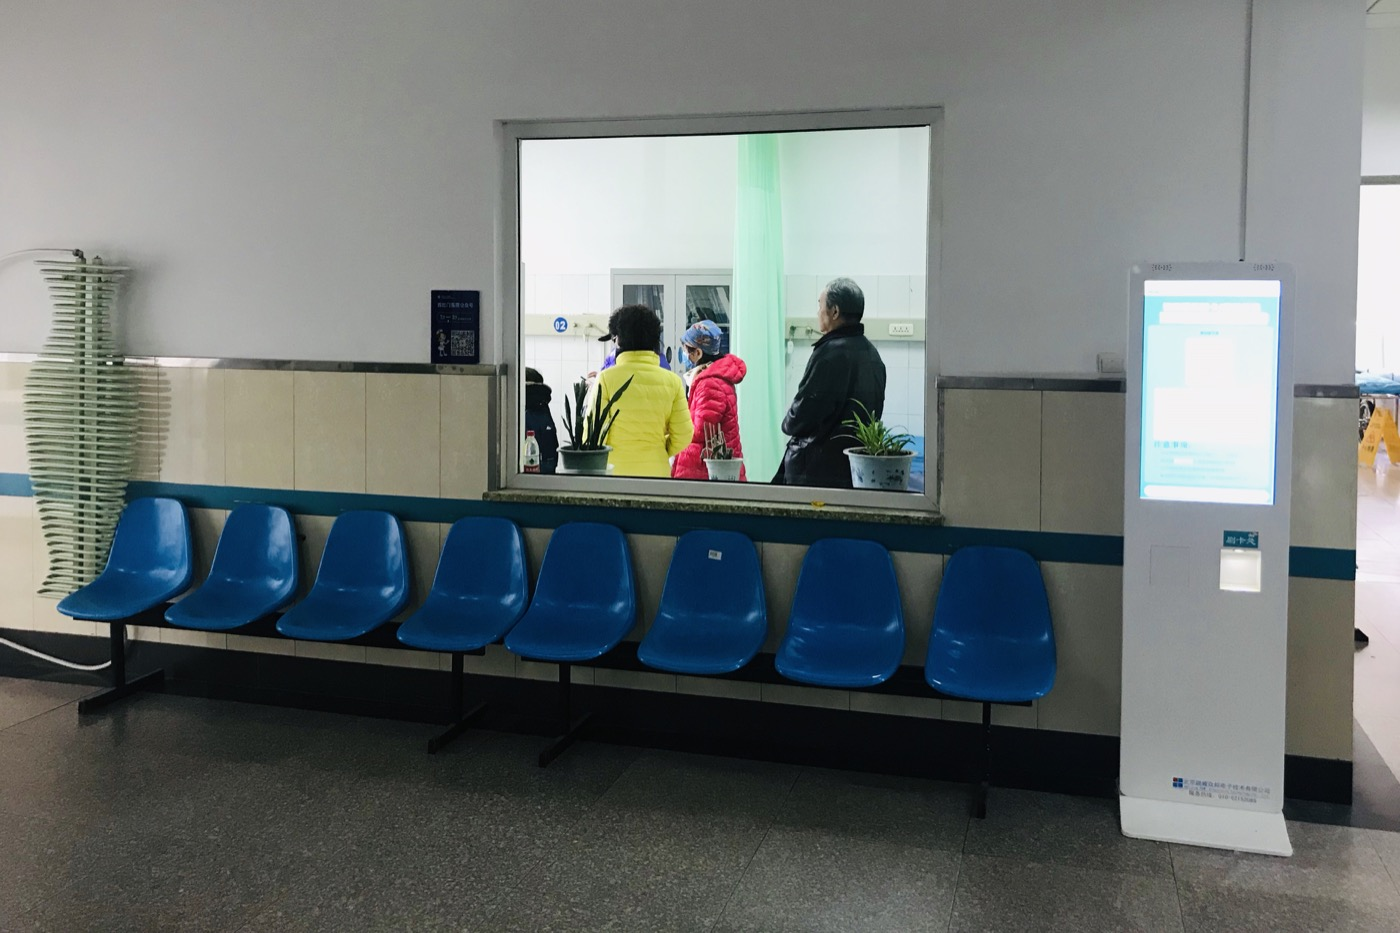 Beijing Hospital. Step 3: See your doctor.